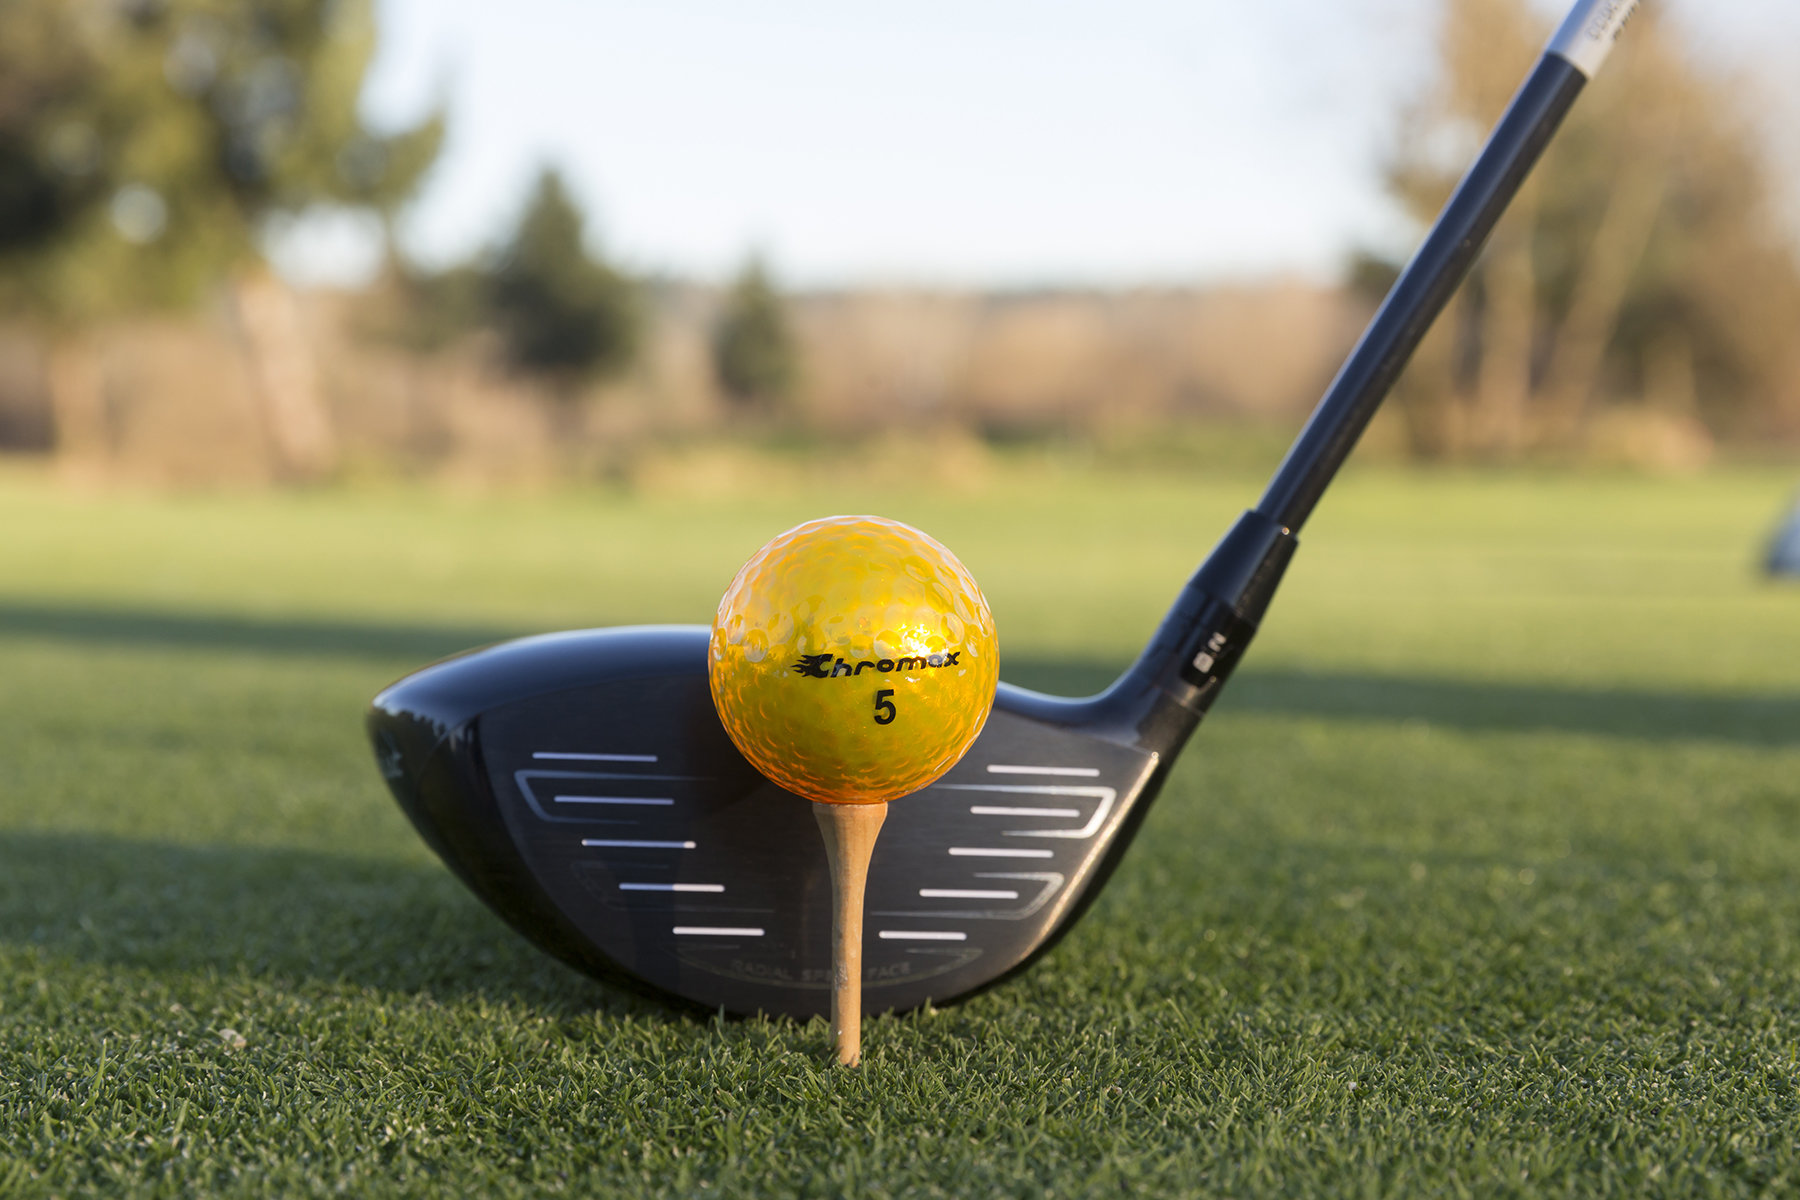 Chromax gold golf ball with driver